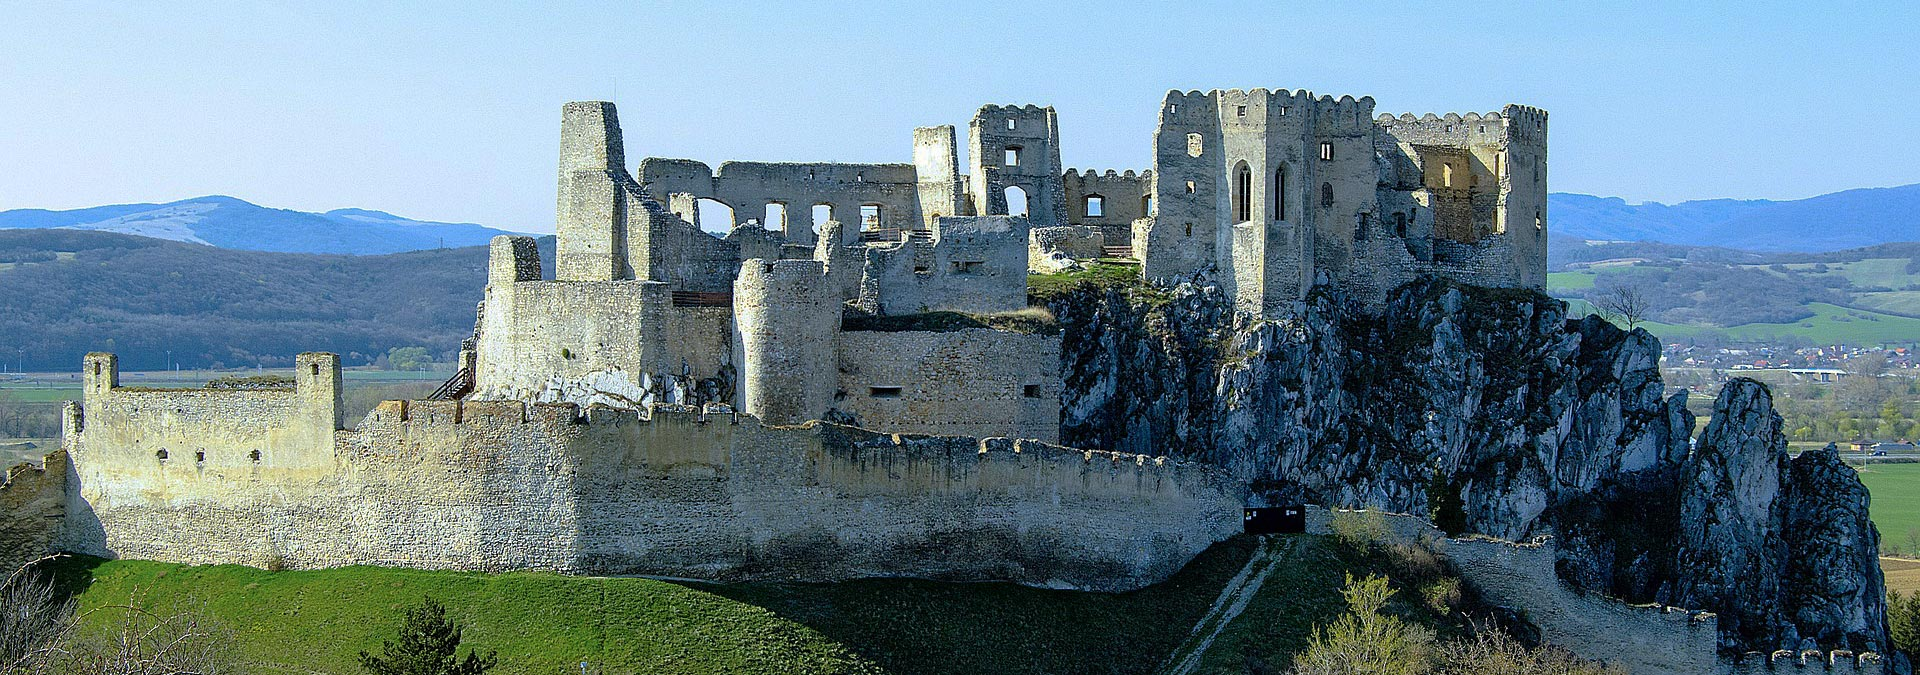 Tourist Attractions and Sightseeing Tour of Western Slovakia, Slovakia Travel, Location